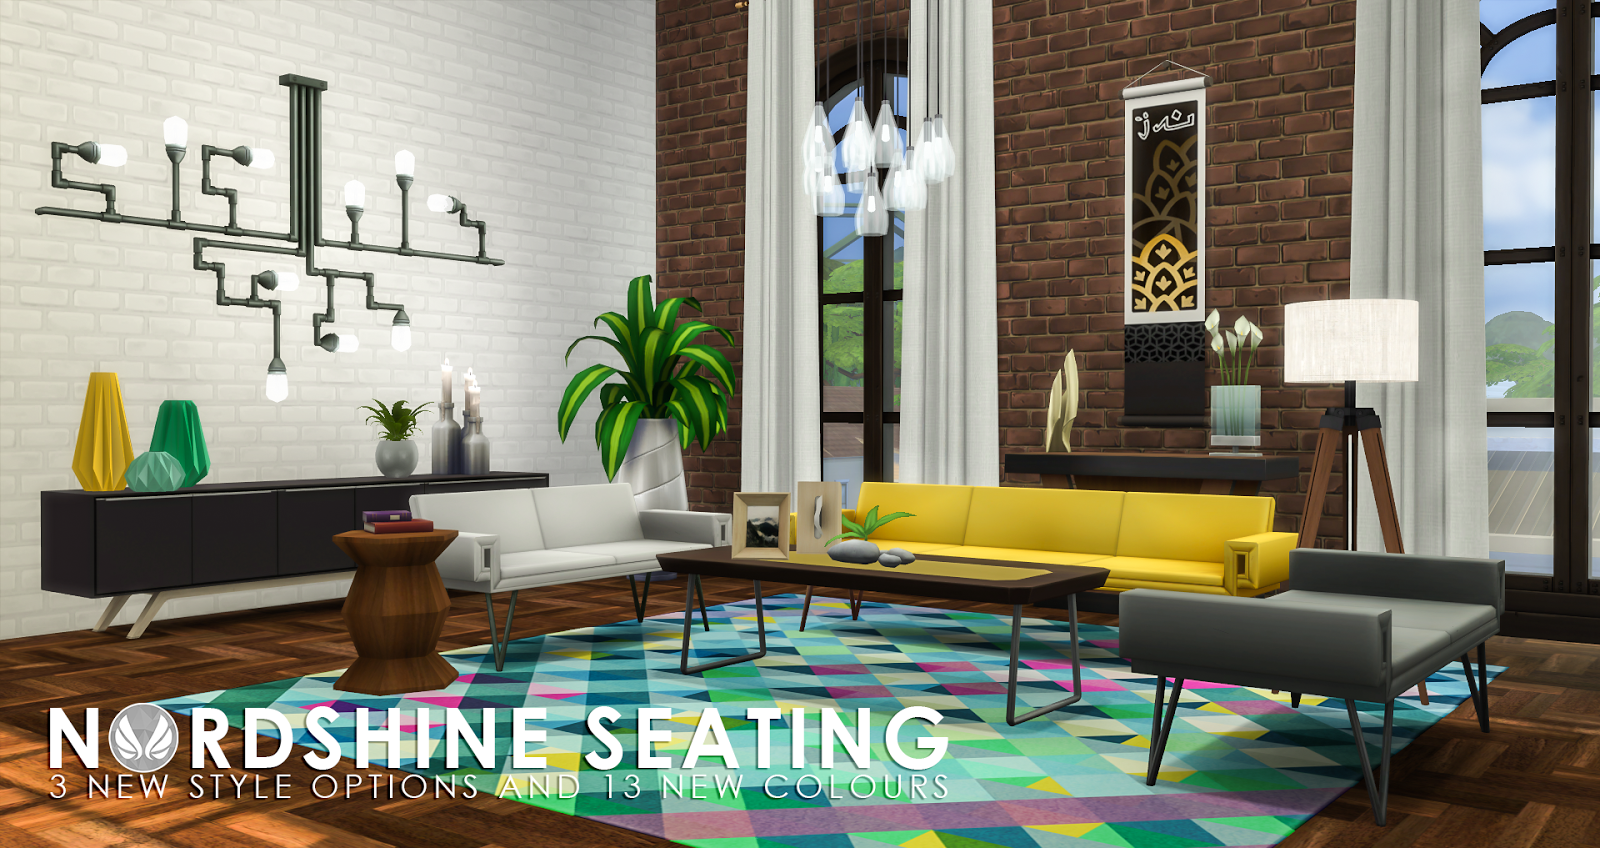 Nordshine Seating   City Living Add On